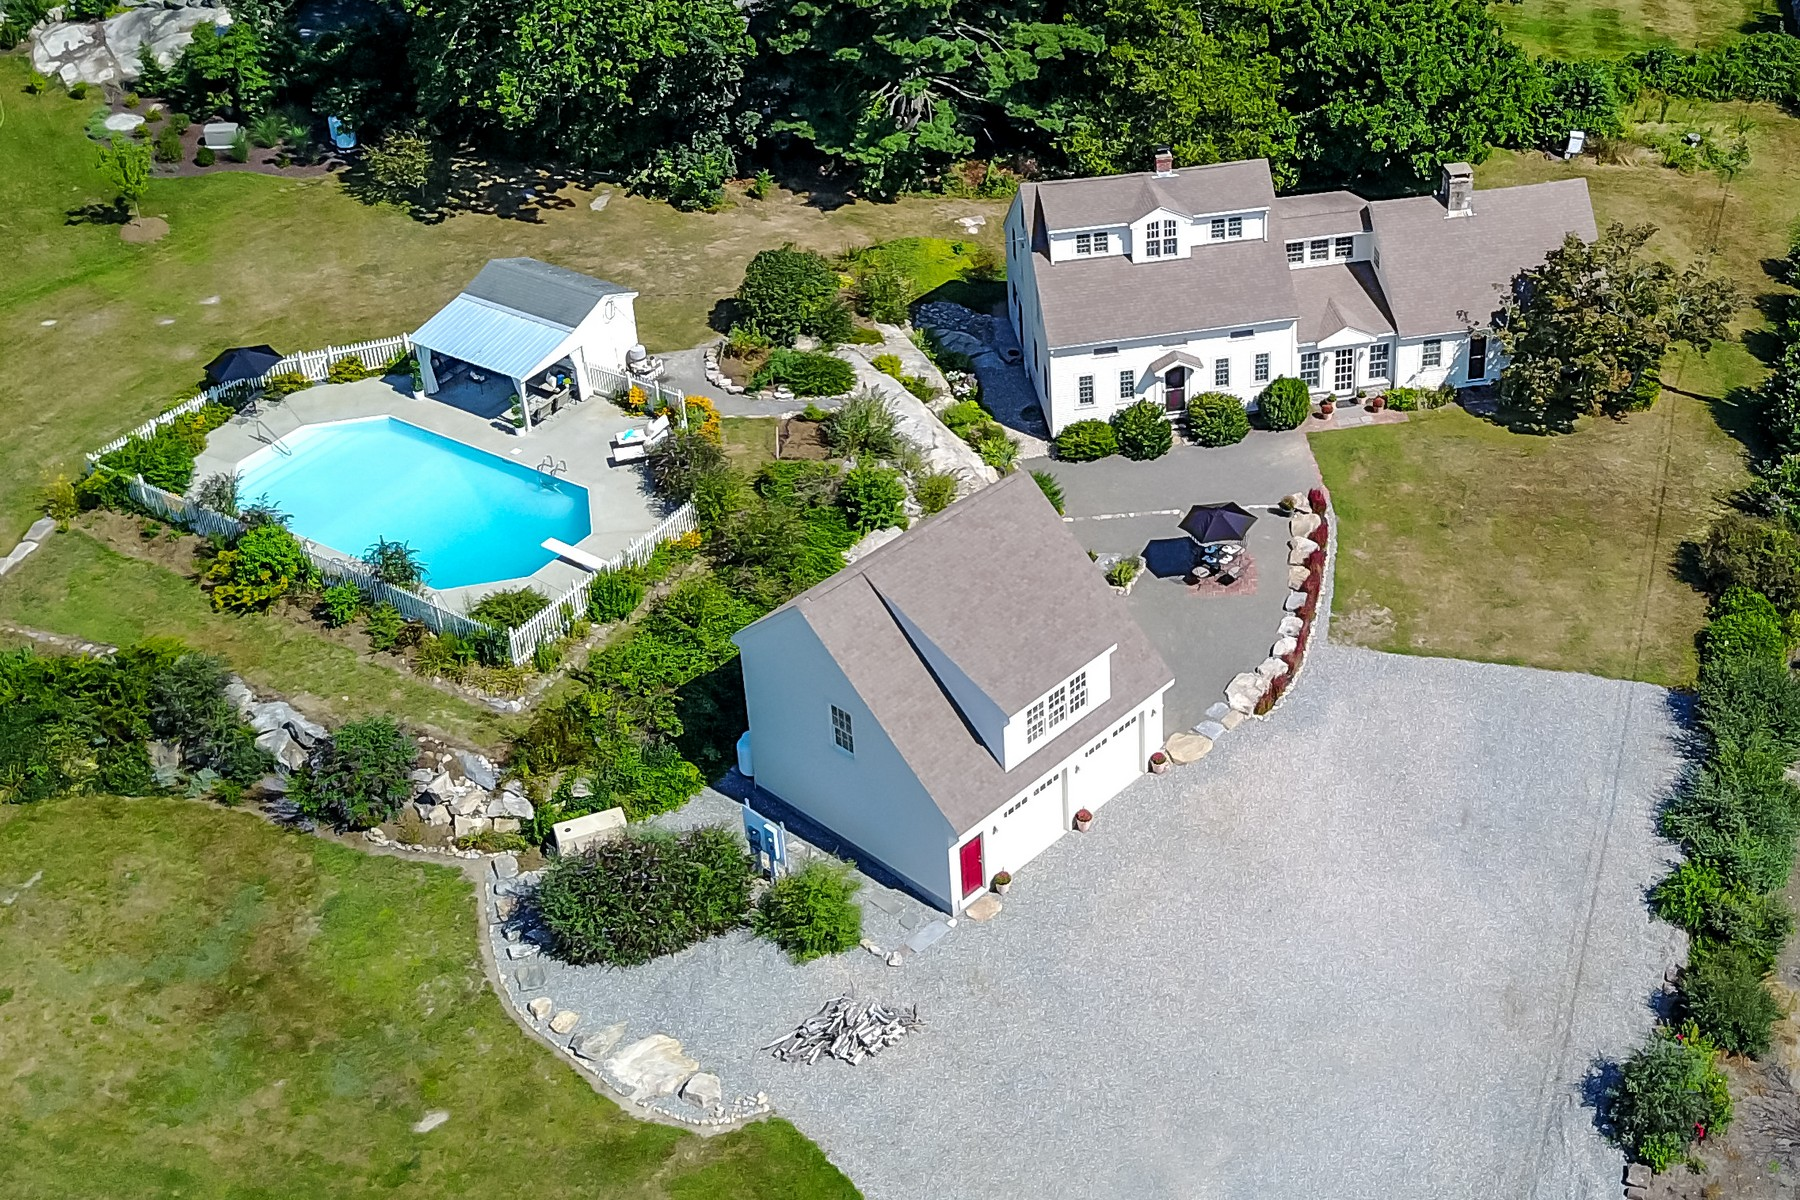 Single Family Homes for Sale at Blending Old with New 500 Noank Road Mystic, Connecticut 06355 United States